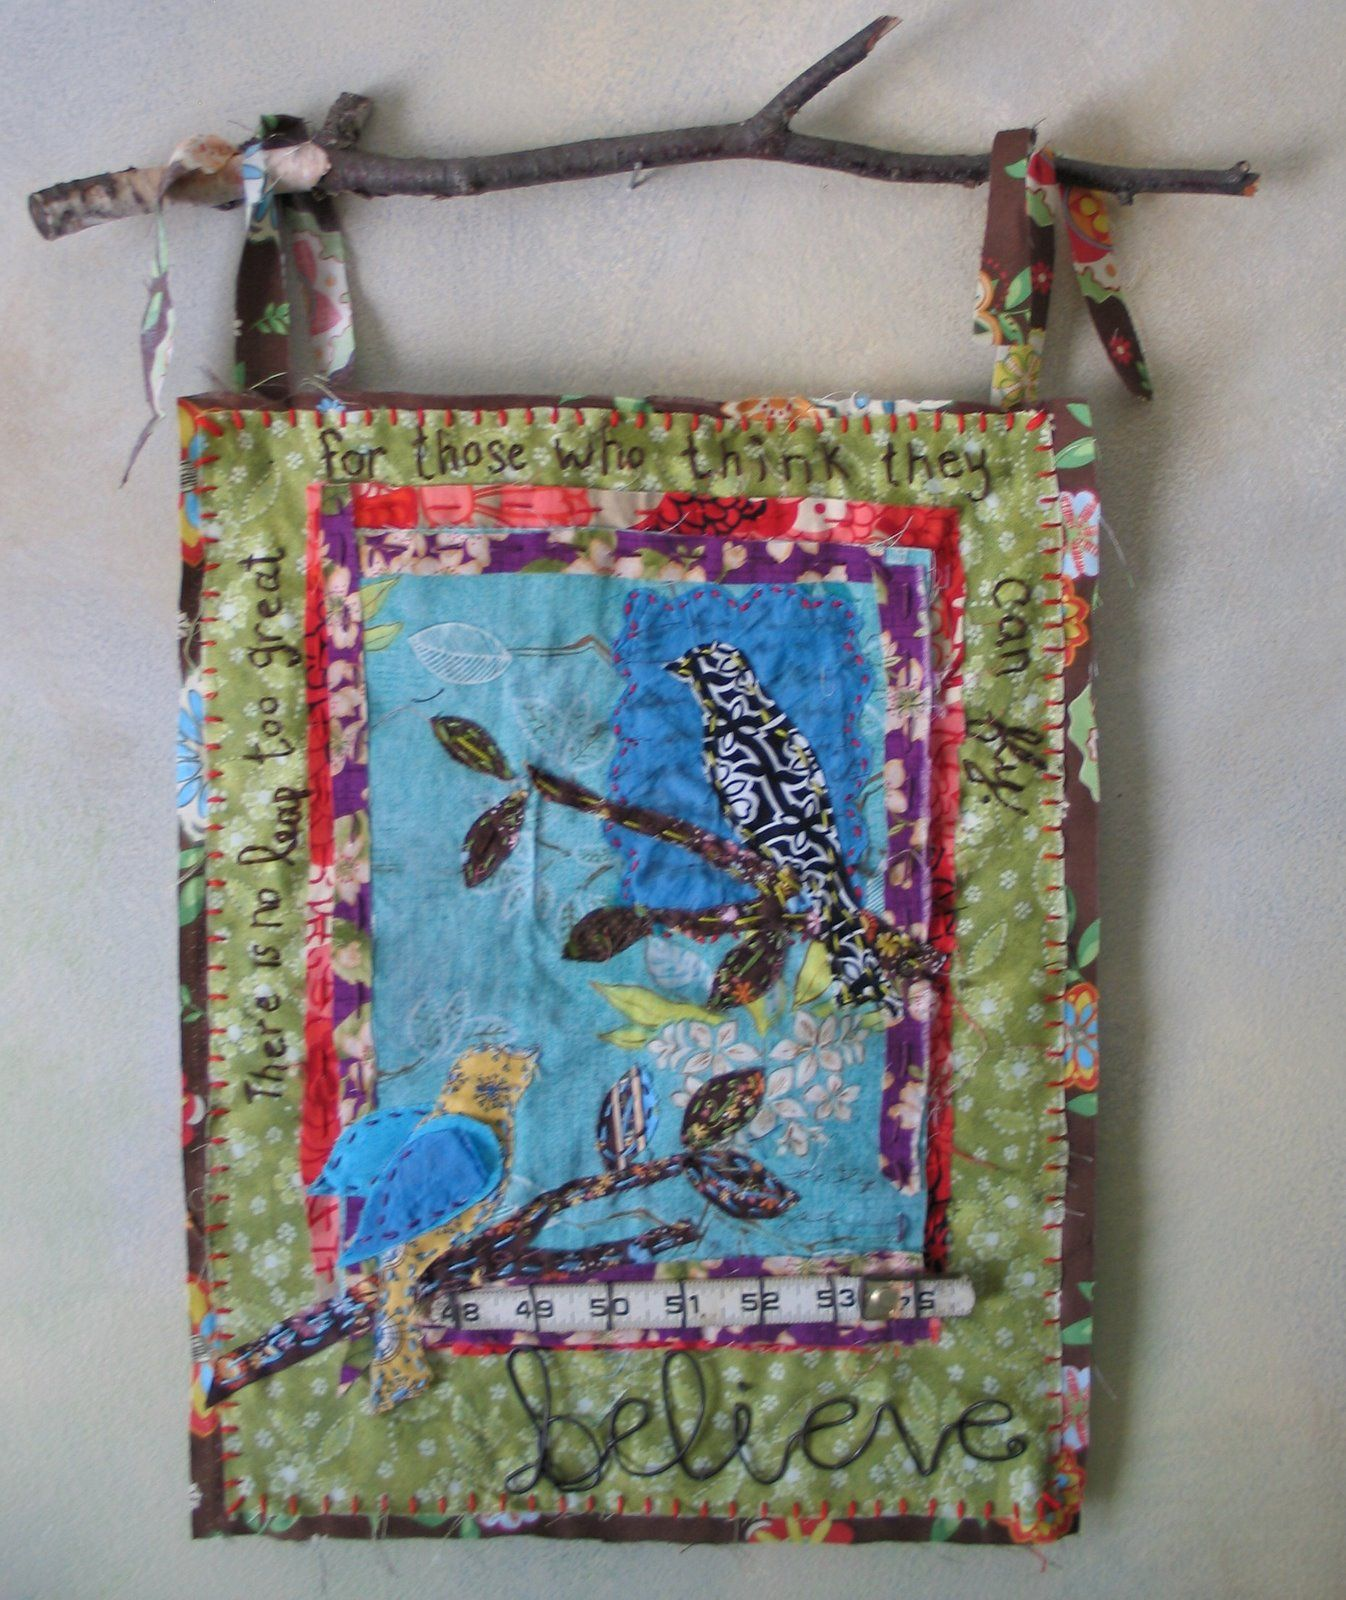 I really like this mixed media piece, built on a base of ...